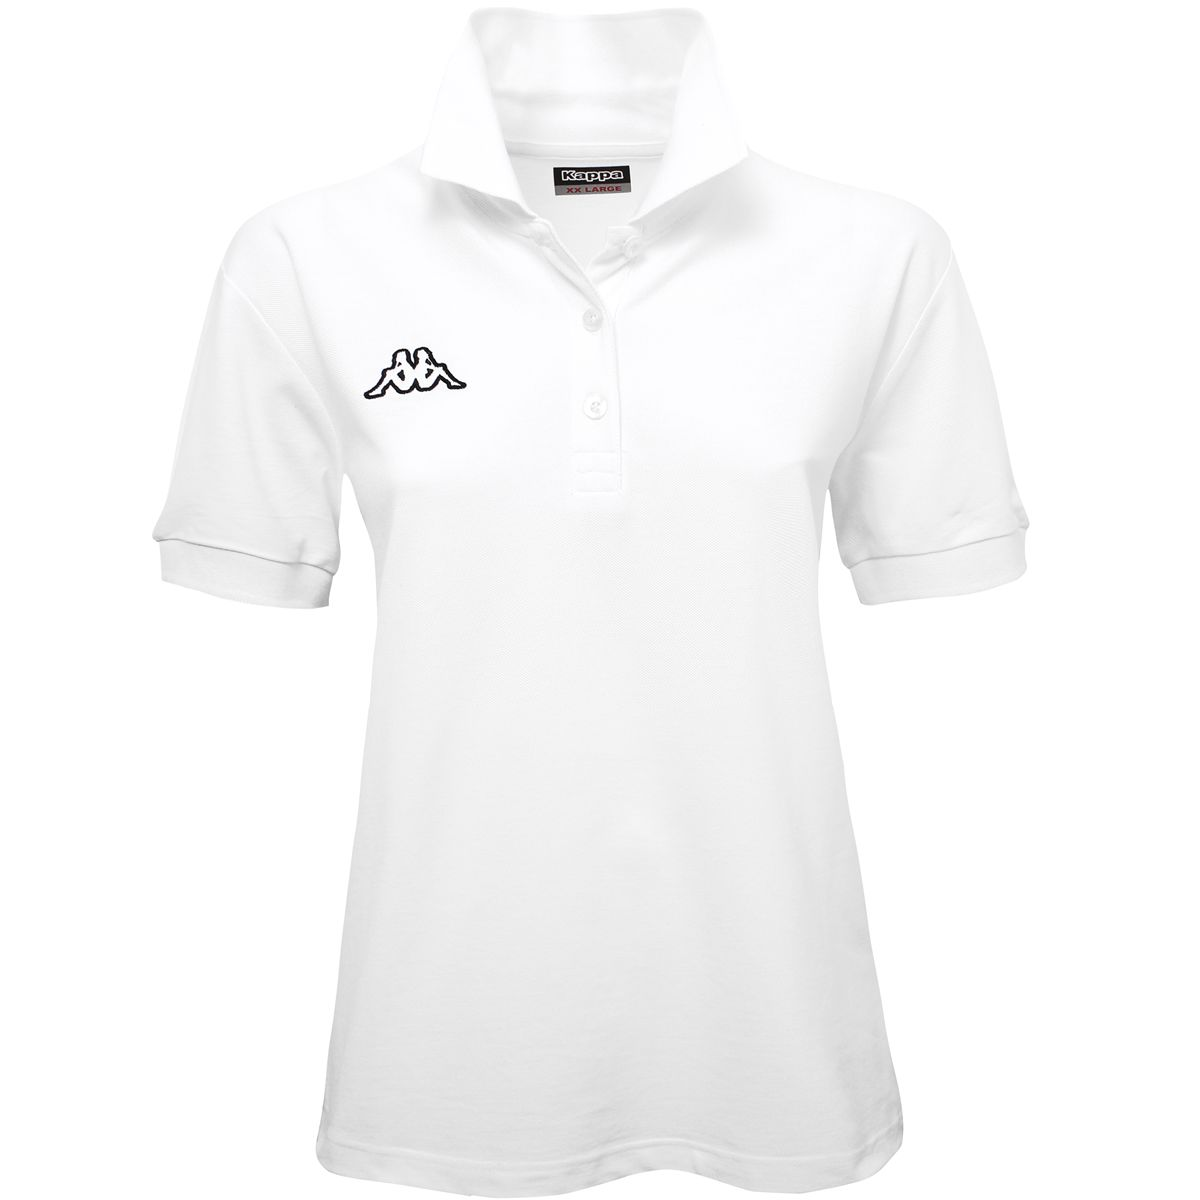 Kappa Polo Shirts LOGO SHARAS WSS Donna Tennis sport Polo